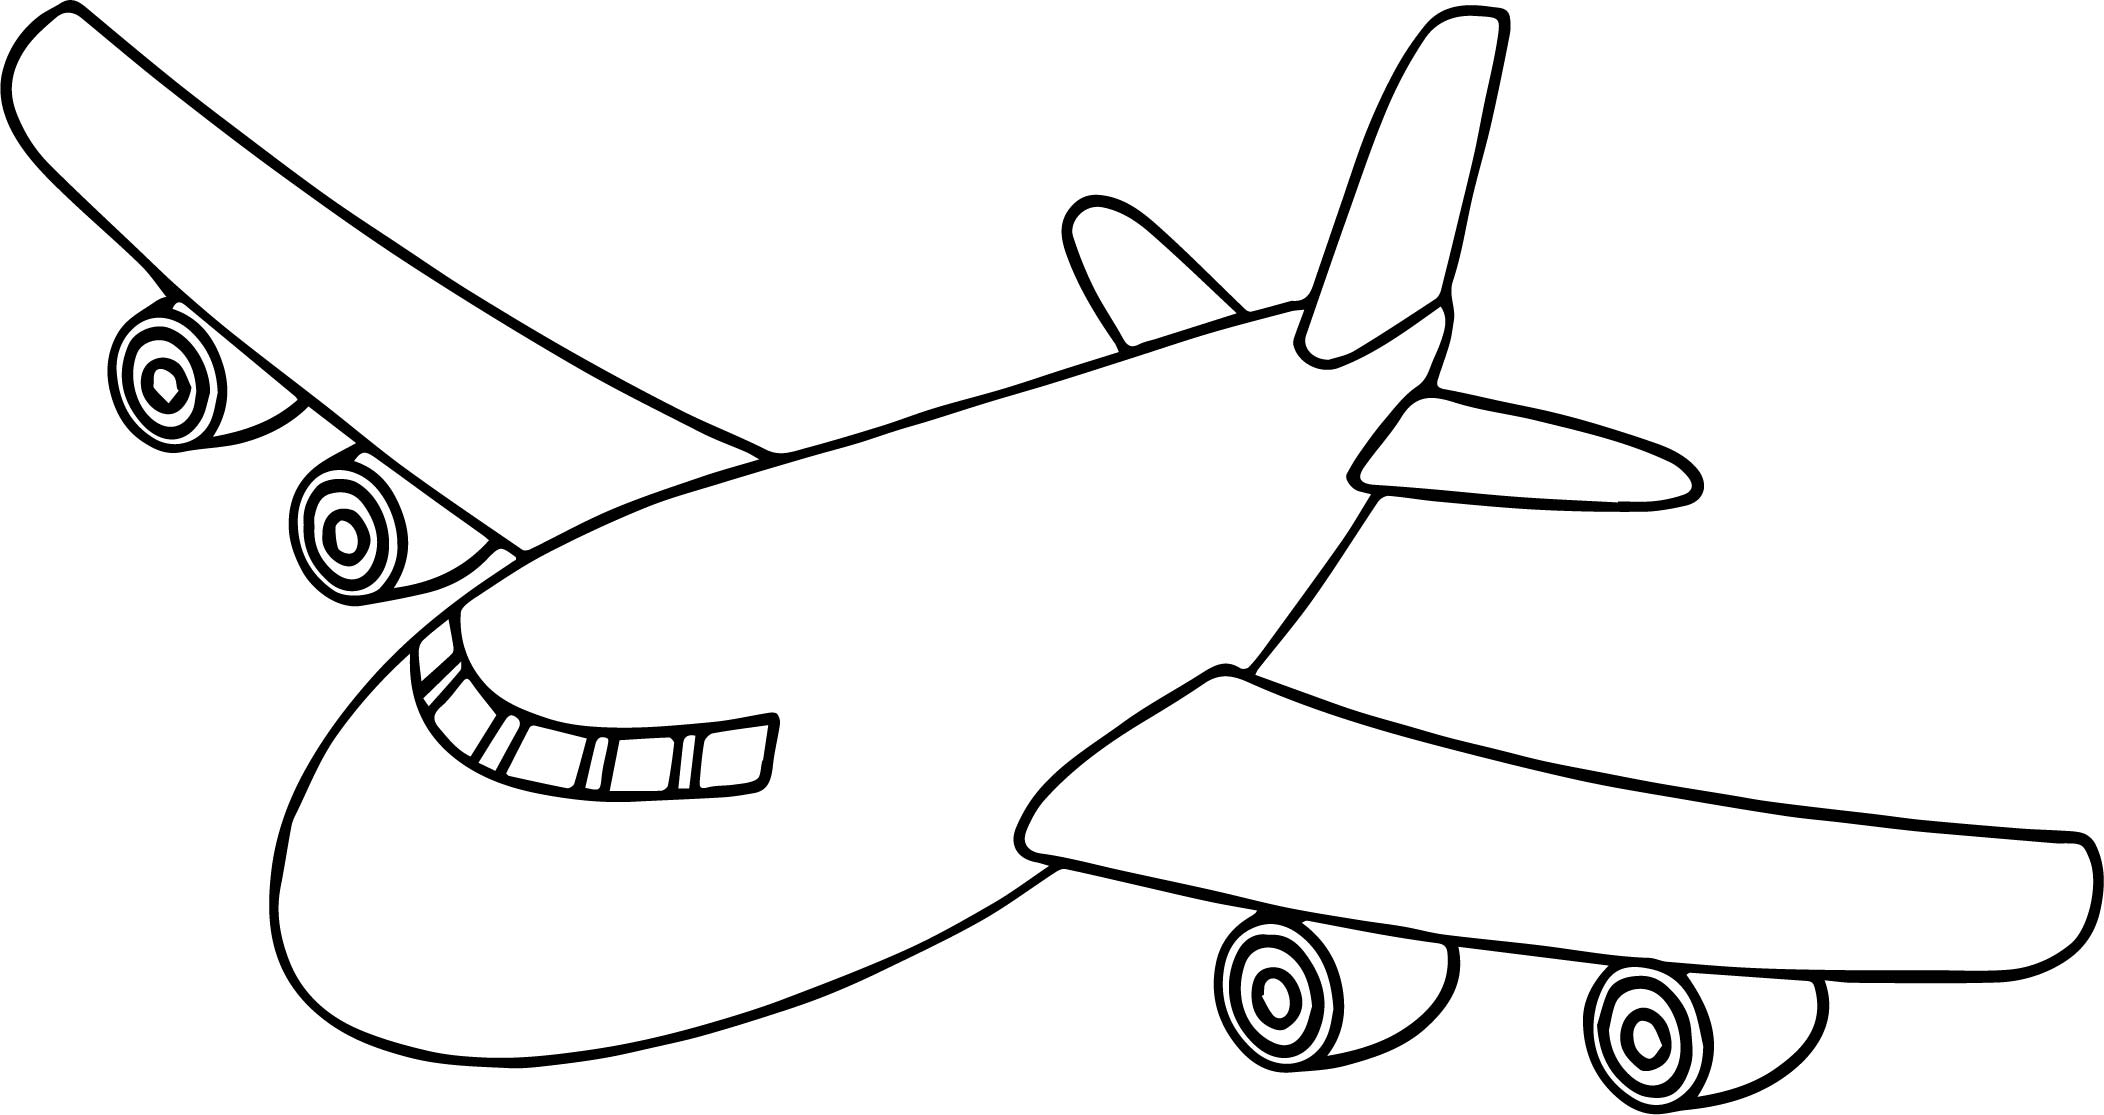 Coloring Pages For Airplanes : Front airplane coloring page wecoloringpage